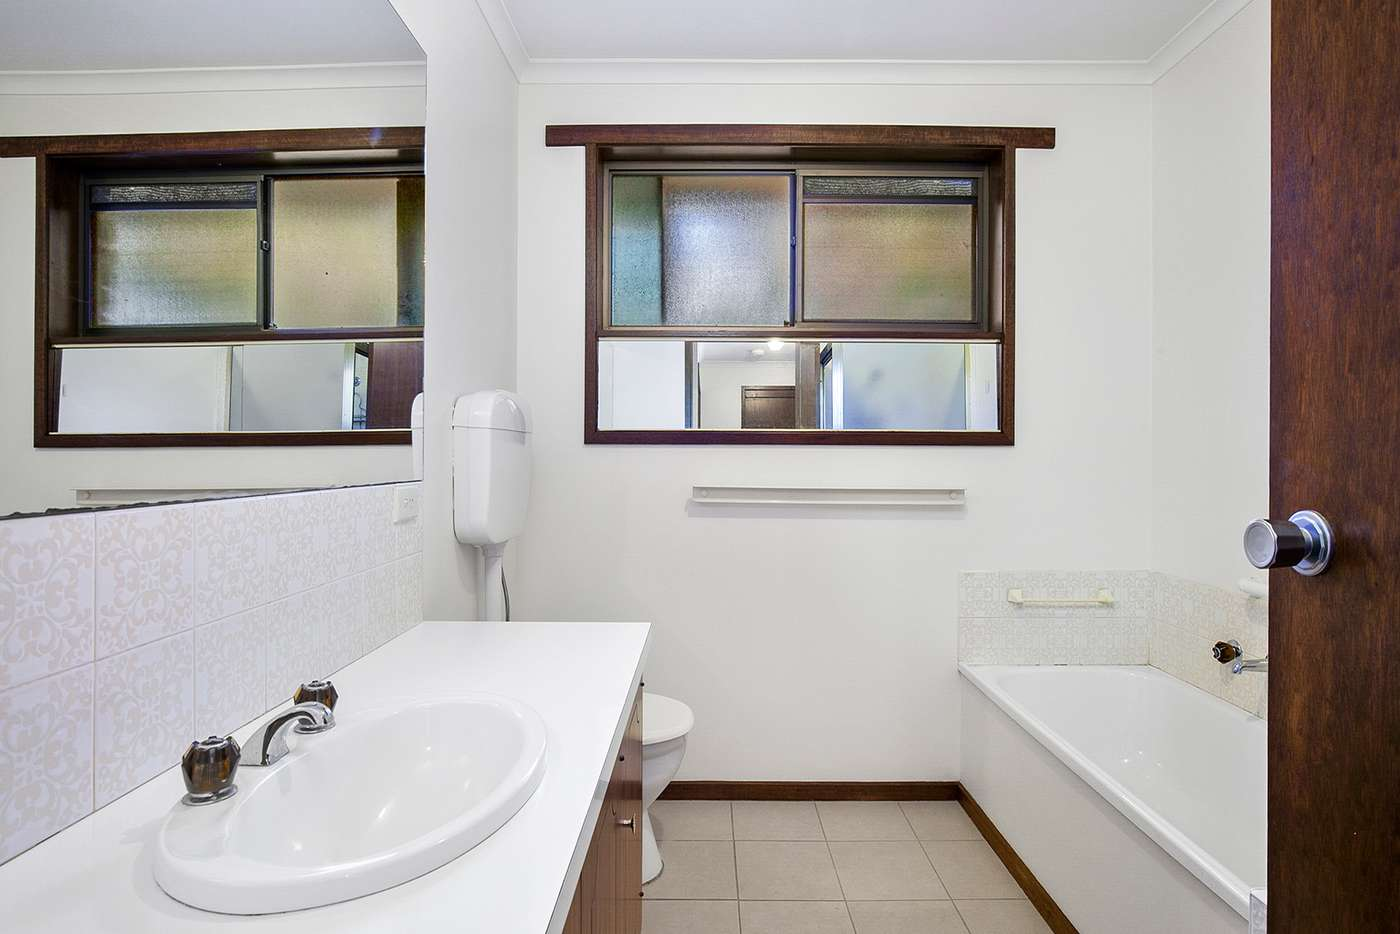 Sixth view of Homely house listing, 1 Cortland Drive, Highton VIC 3216